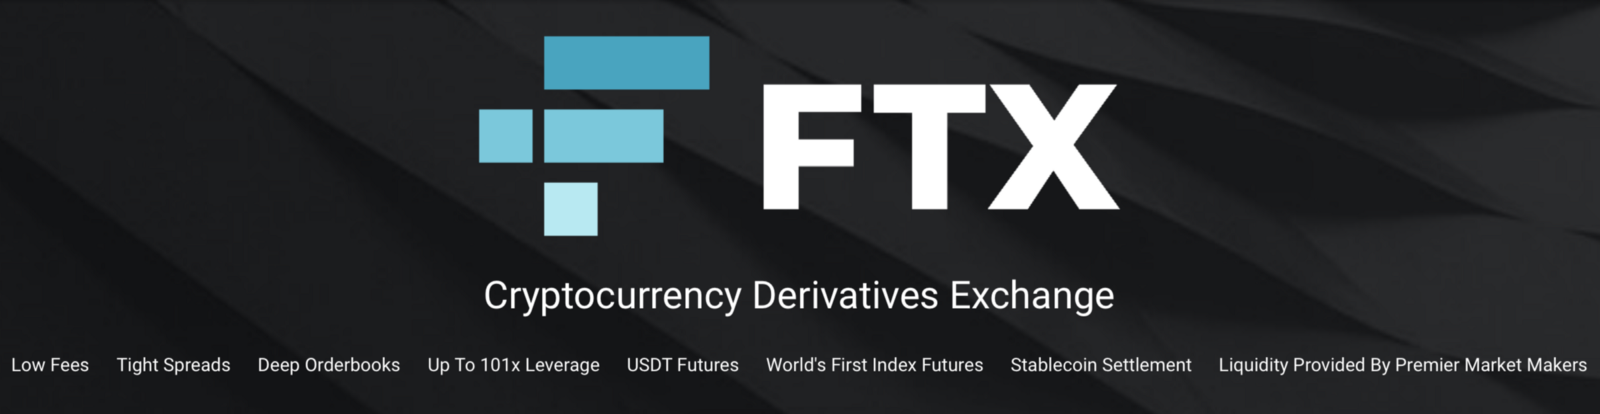 FTX Token description